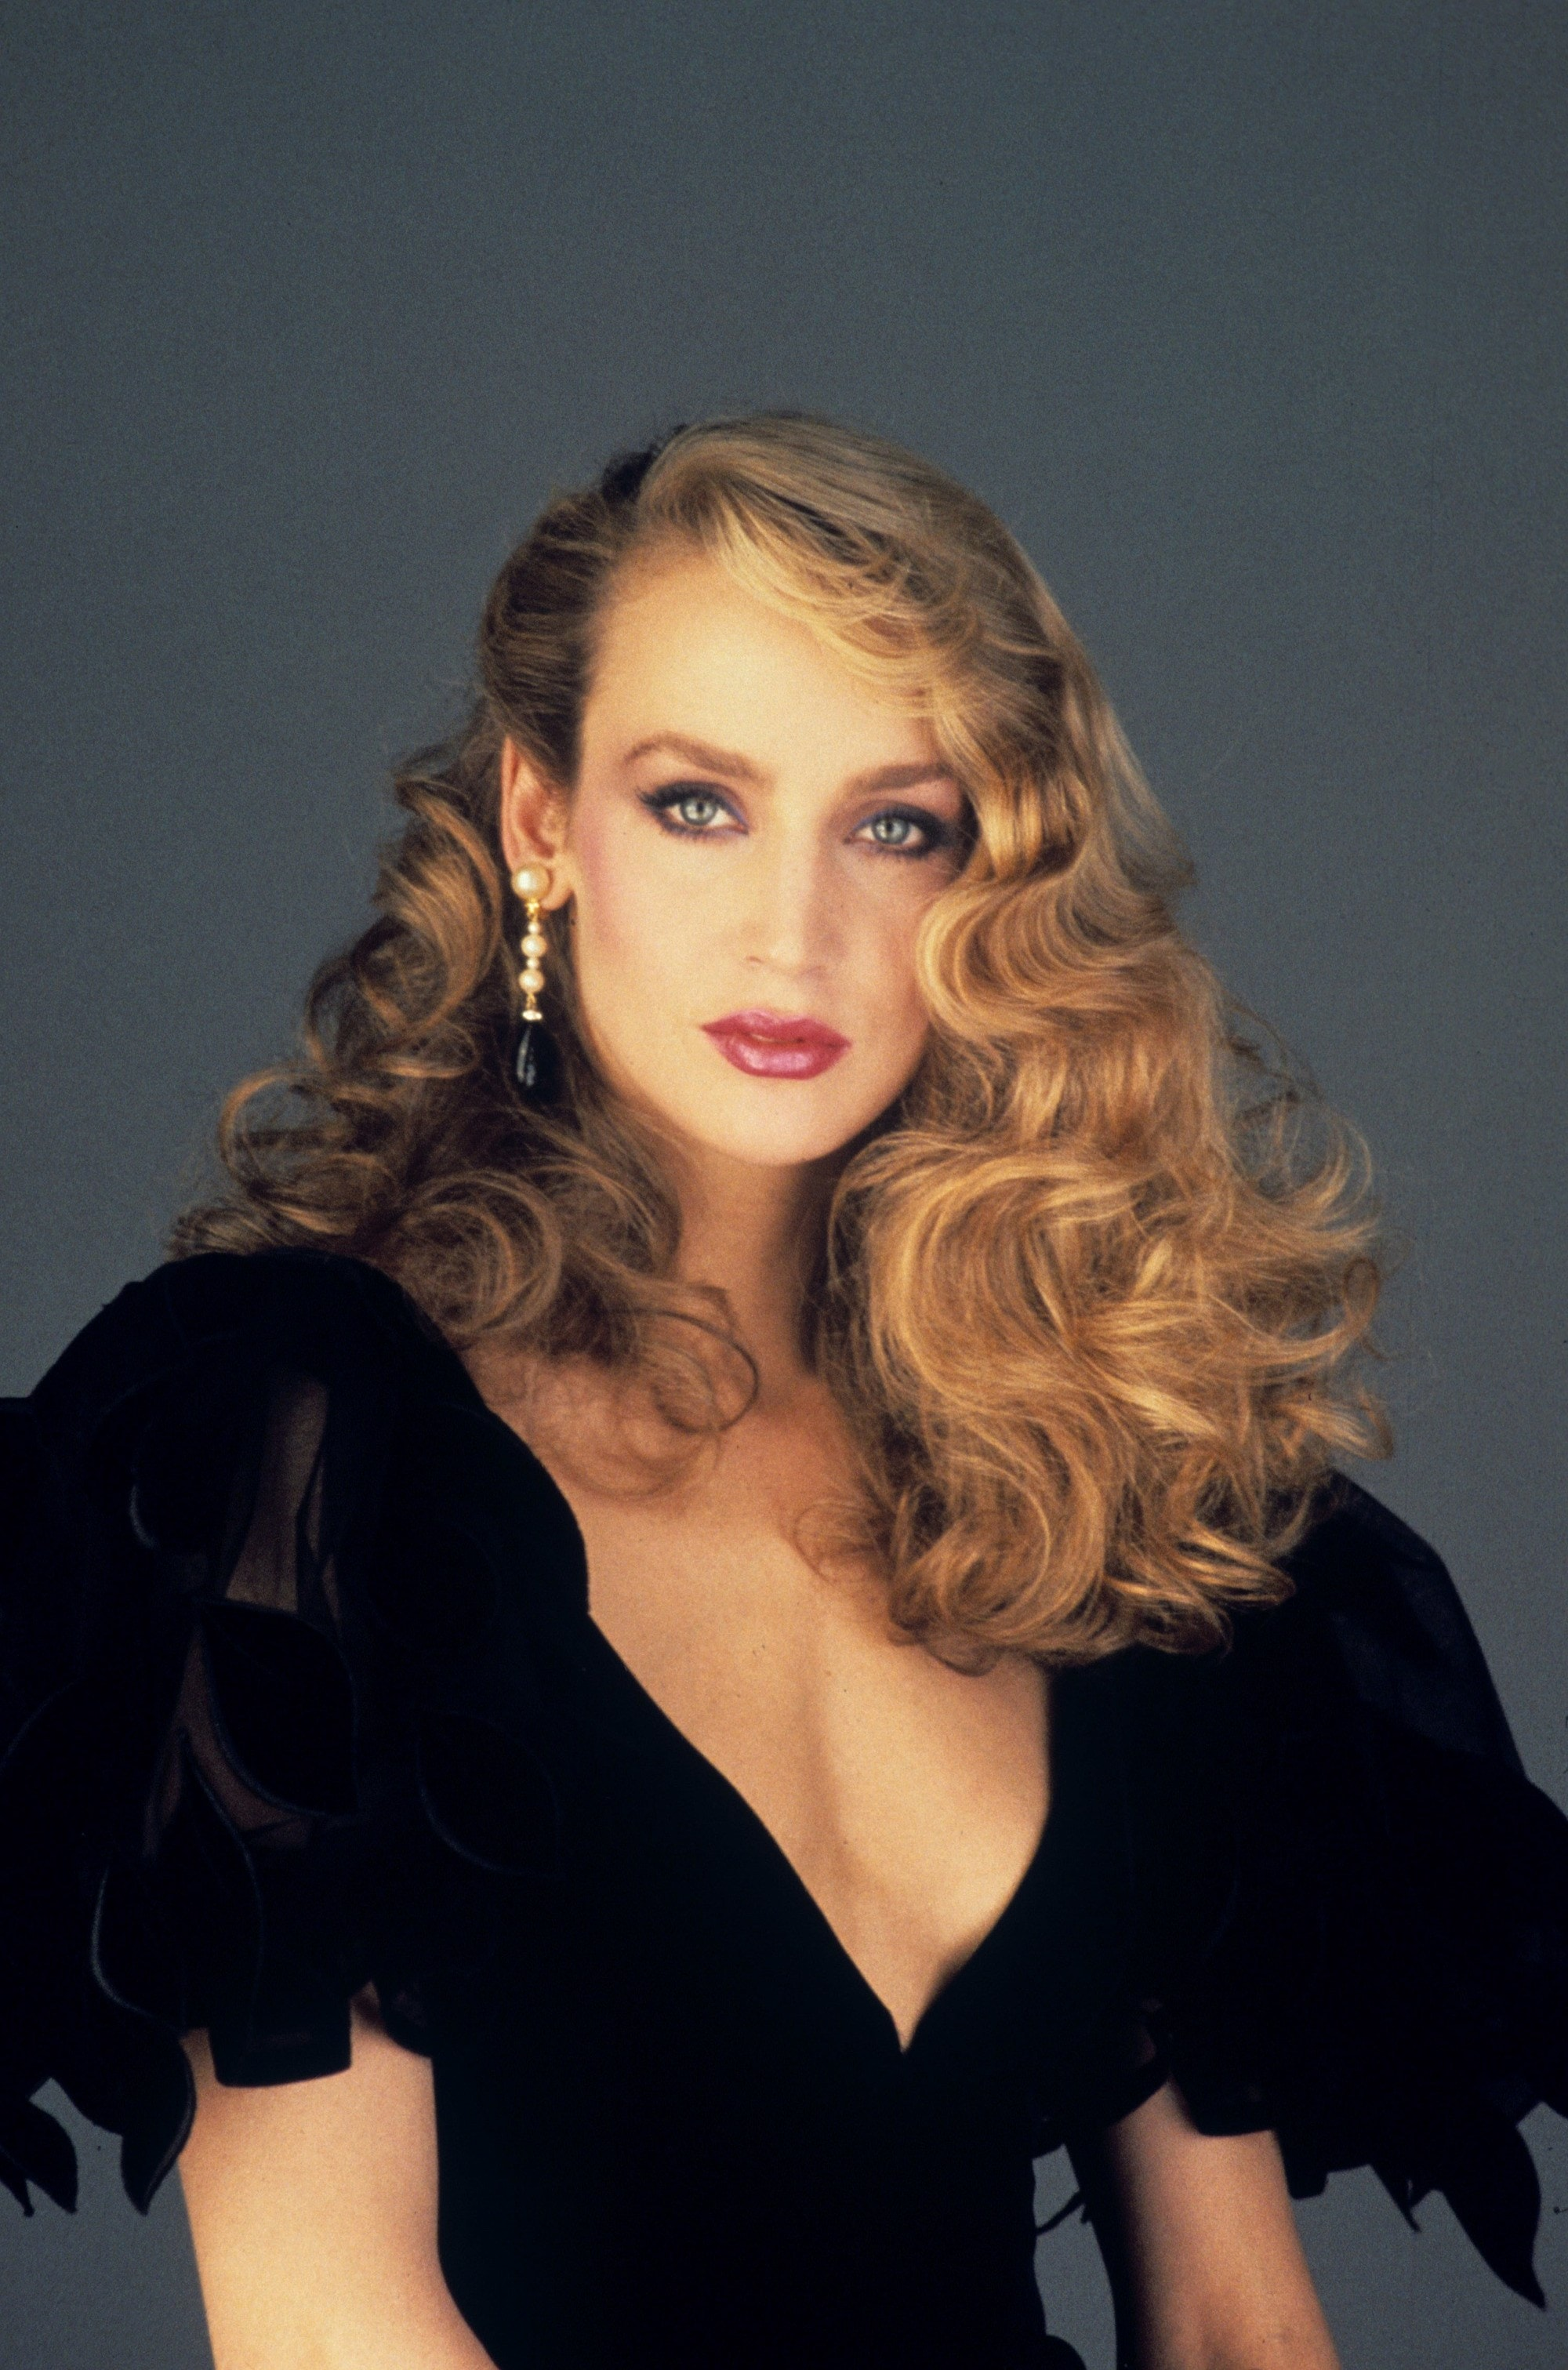 70s hairstyles: Jerry Hall long curly golden blonde hair swept over one shoulder wearing big sleeved black dress